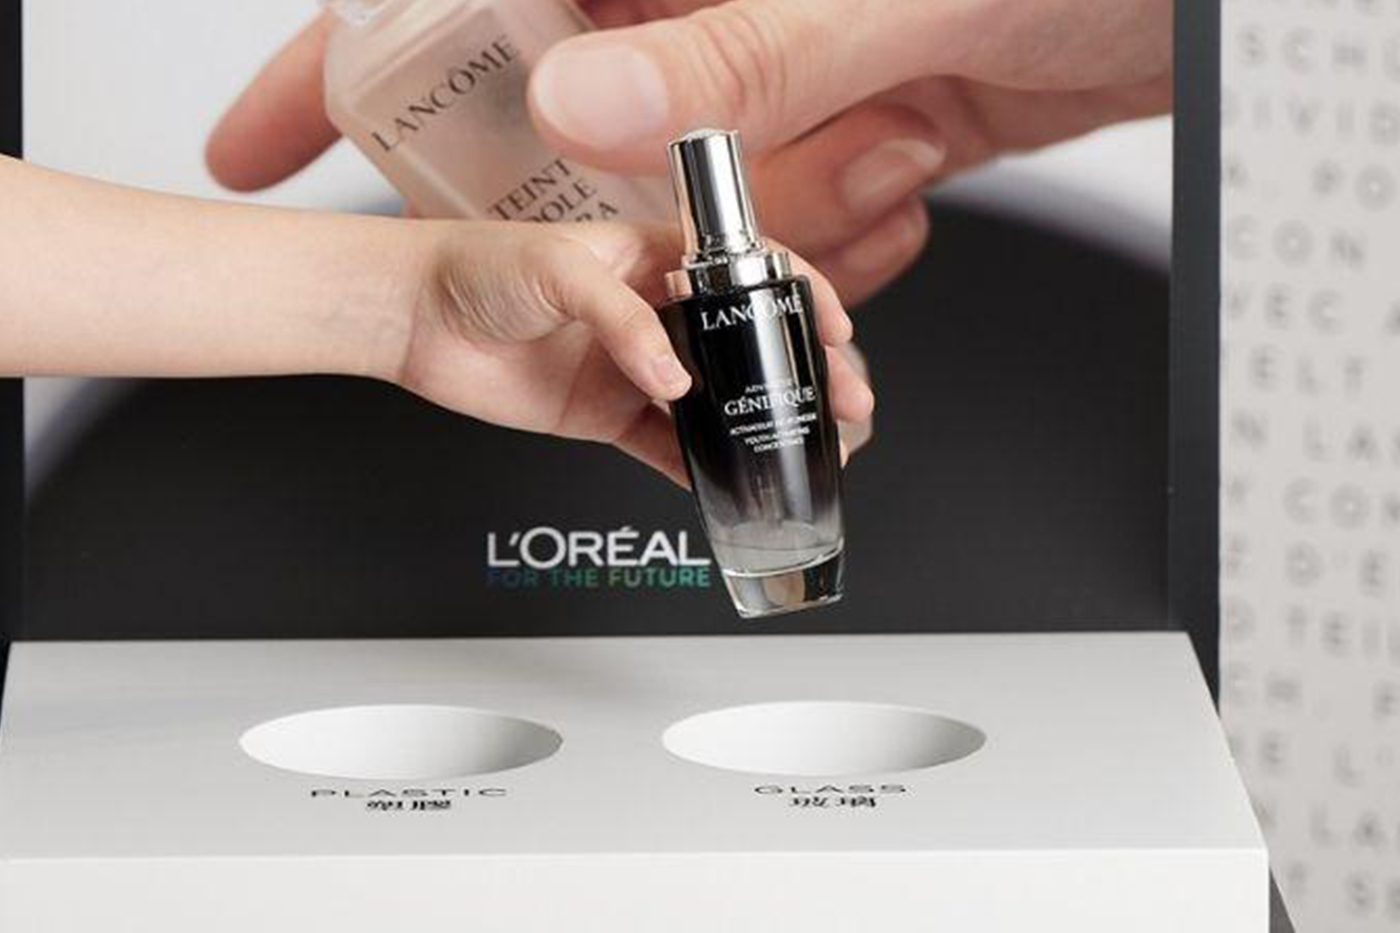 L'Oréal Hong Kong starts recycling program with its 13 beauty brands